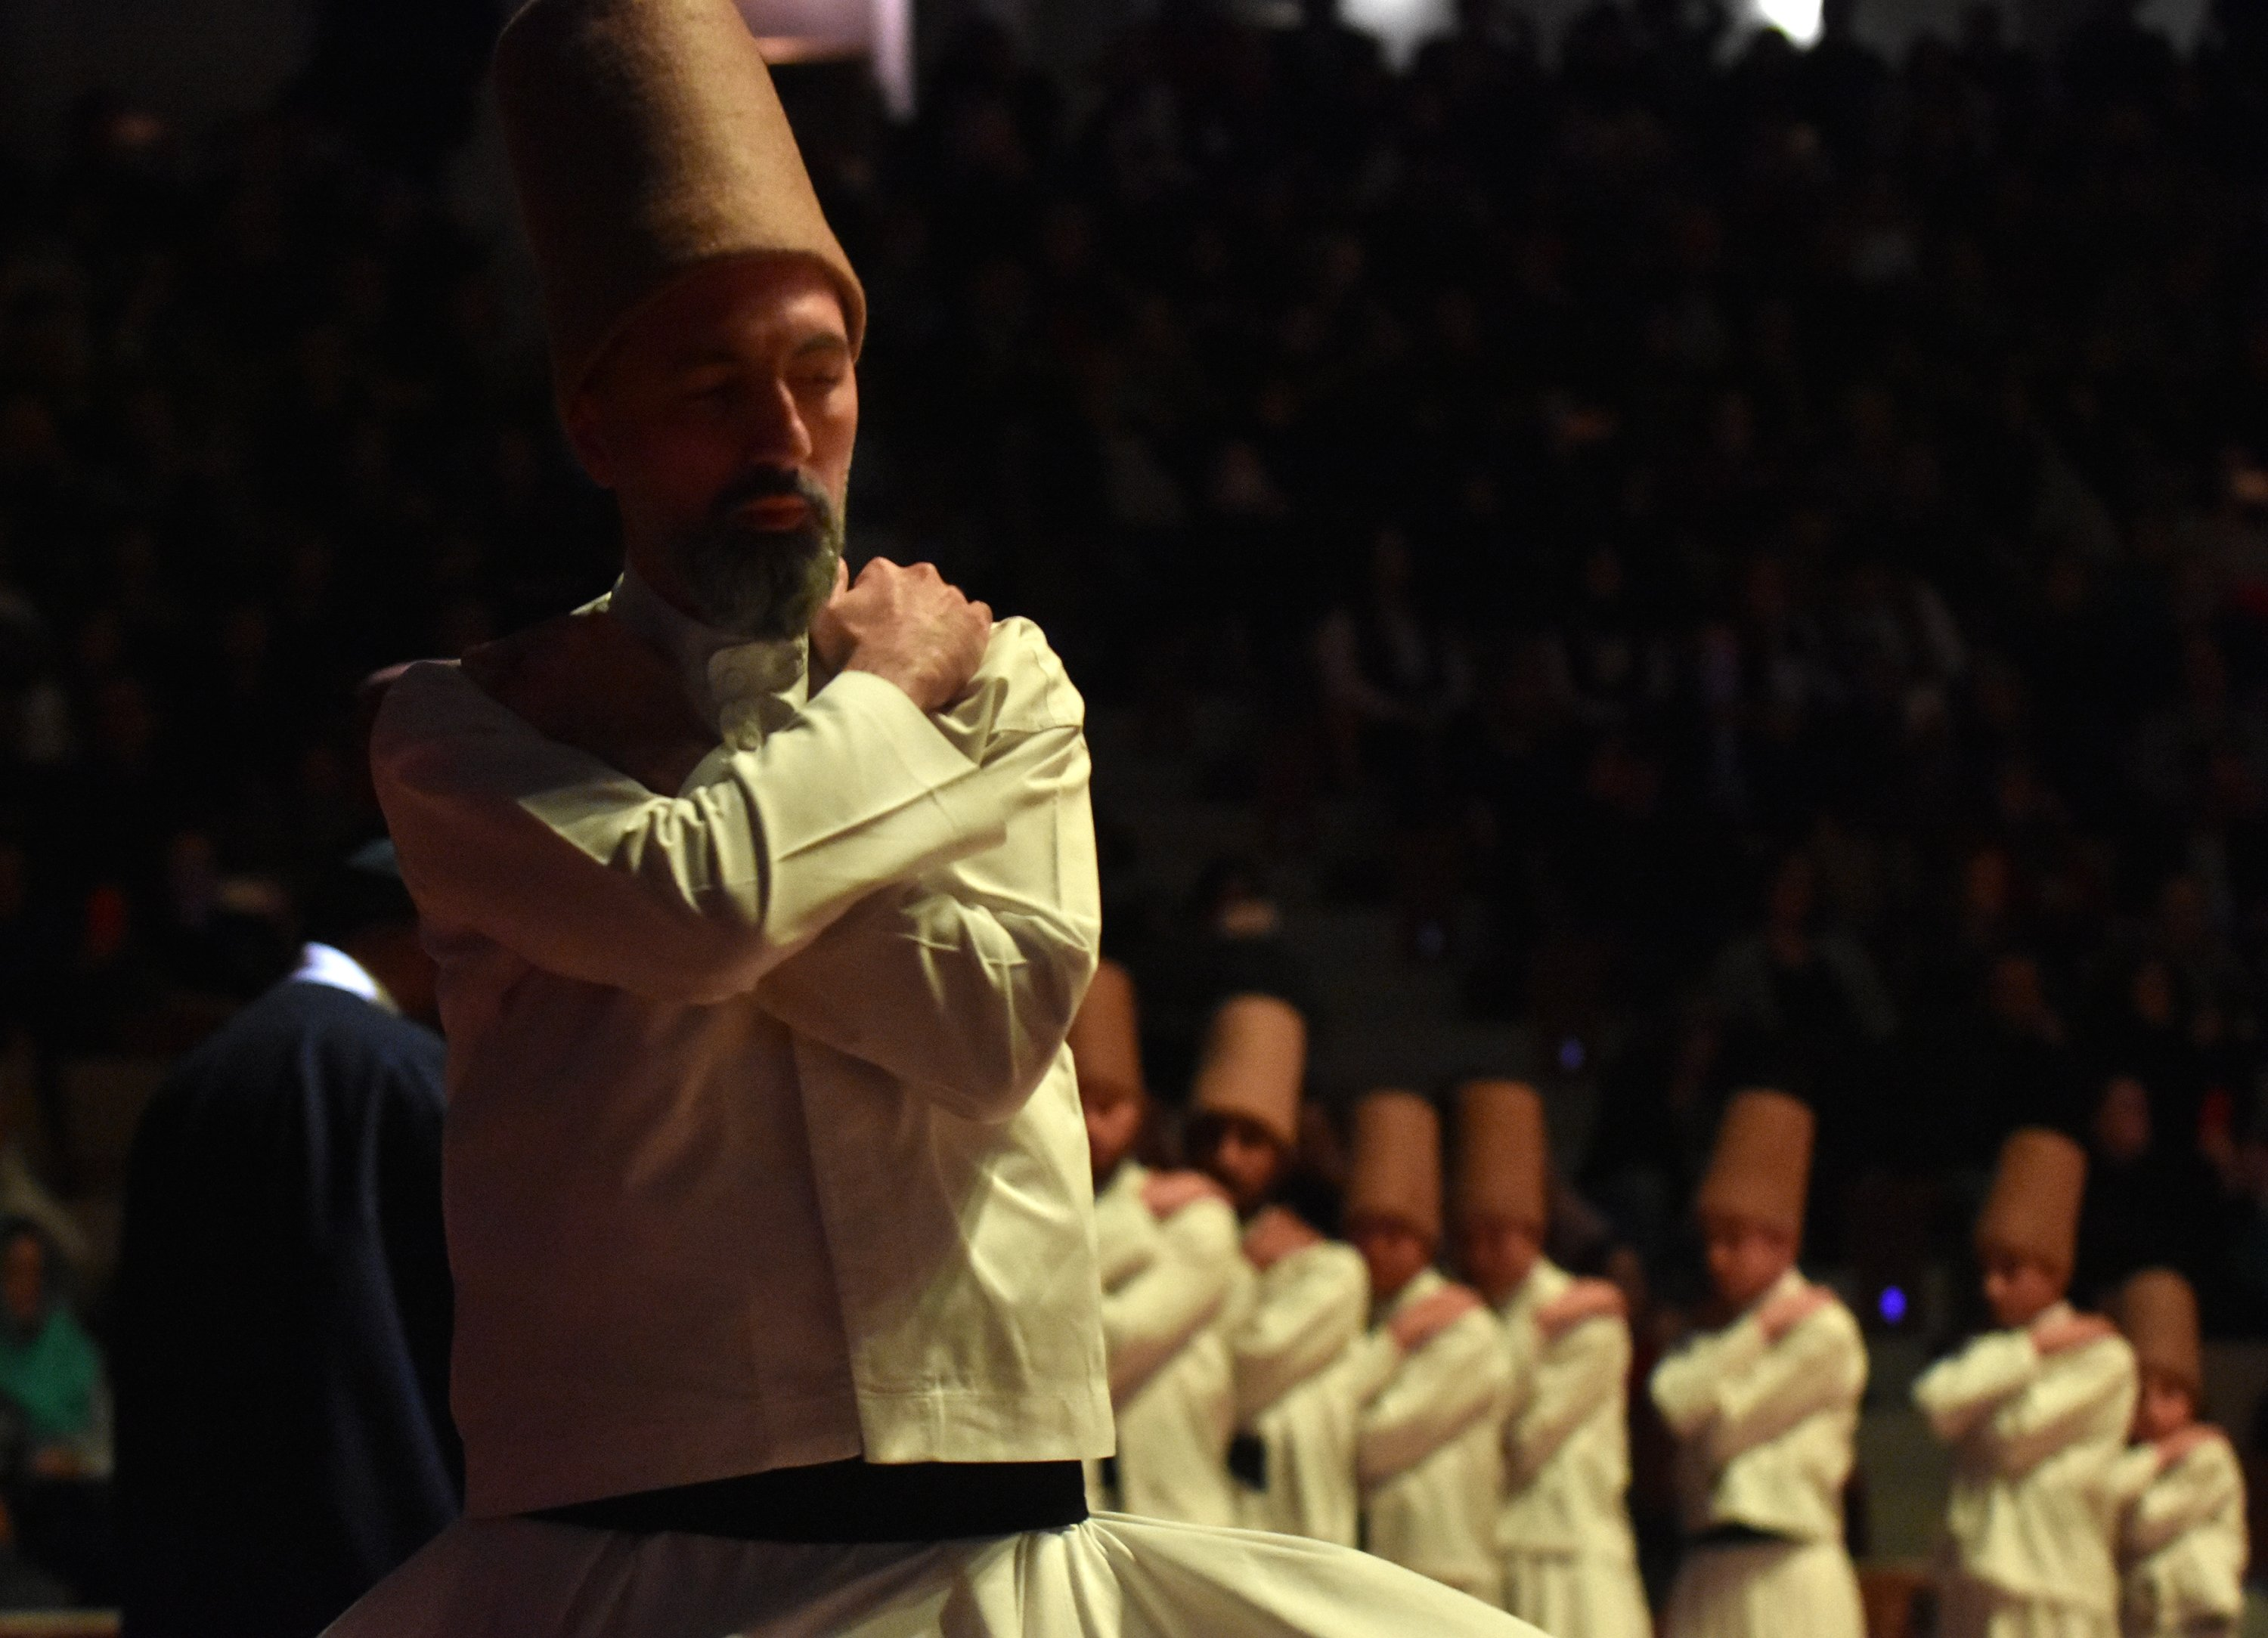 Whirling dervishes perform Sema with their arms across their chests to the accompaniment of music, Konya, central Turkey, Dec. 5, 2020. (DHA PHOTO)